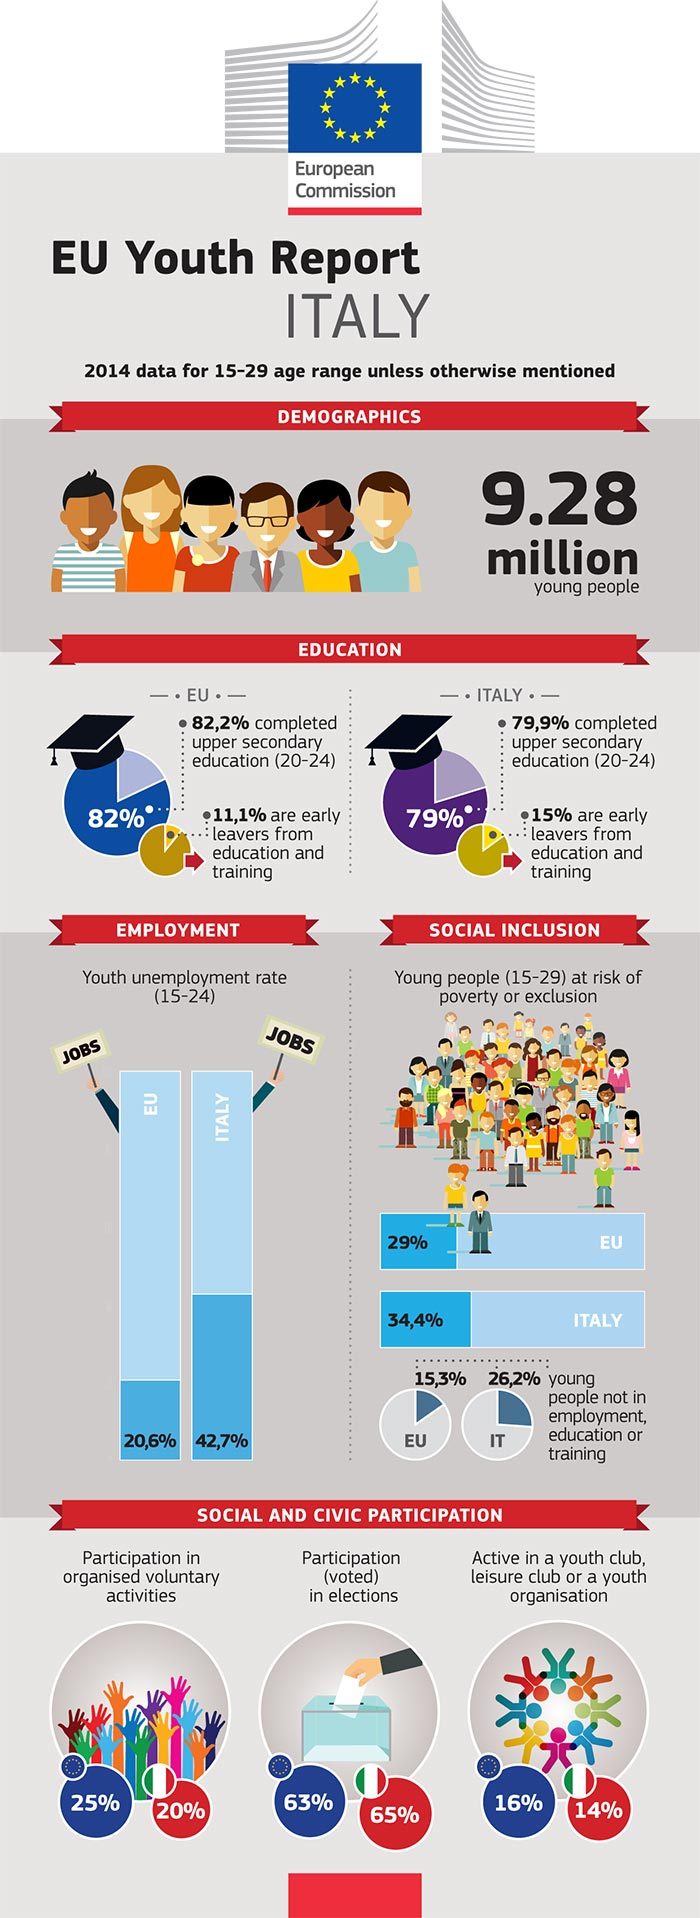 EU Youth Report infographic: Italy